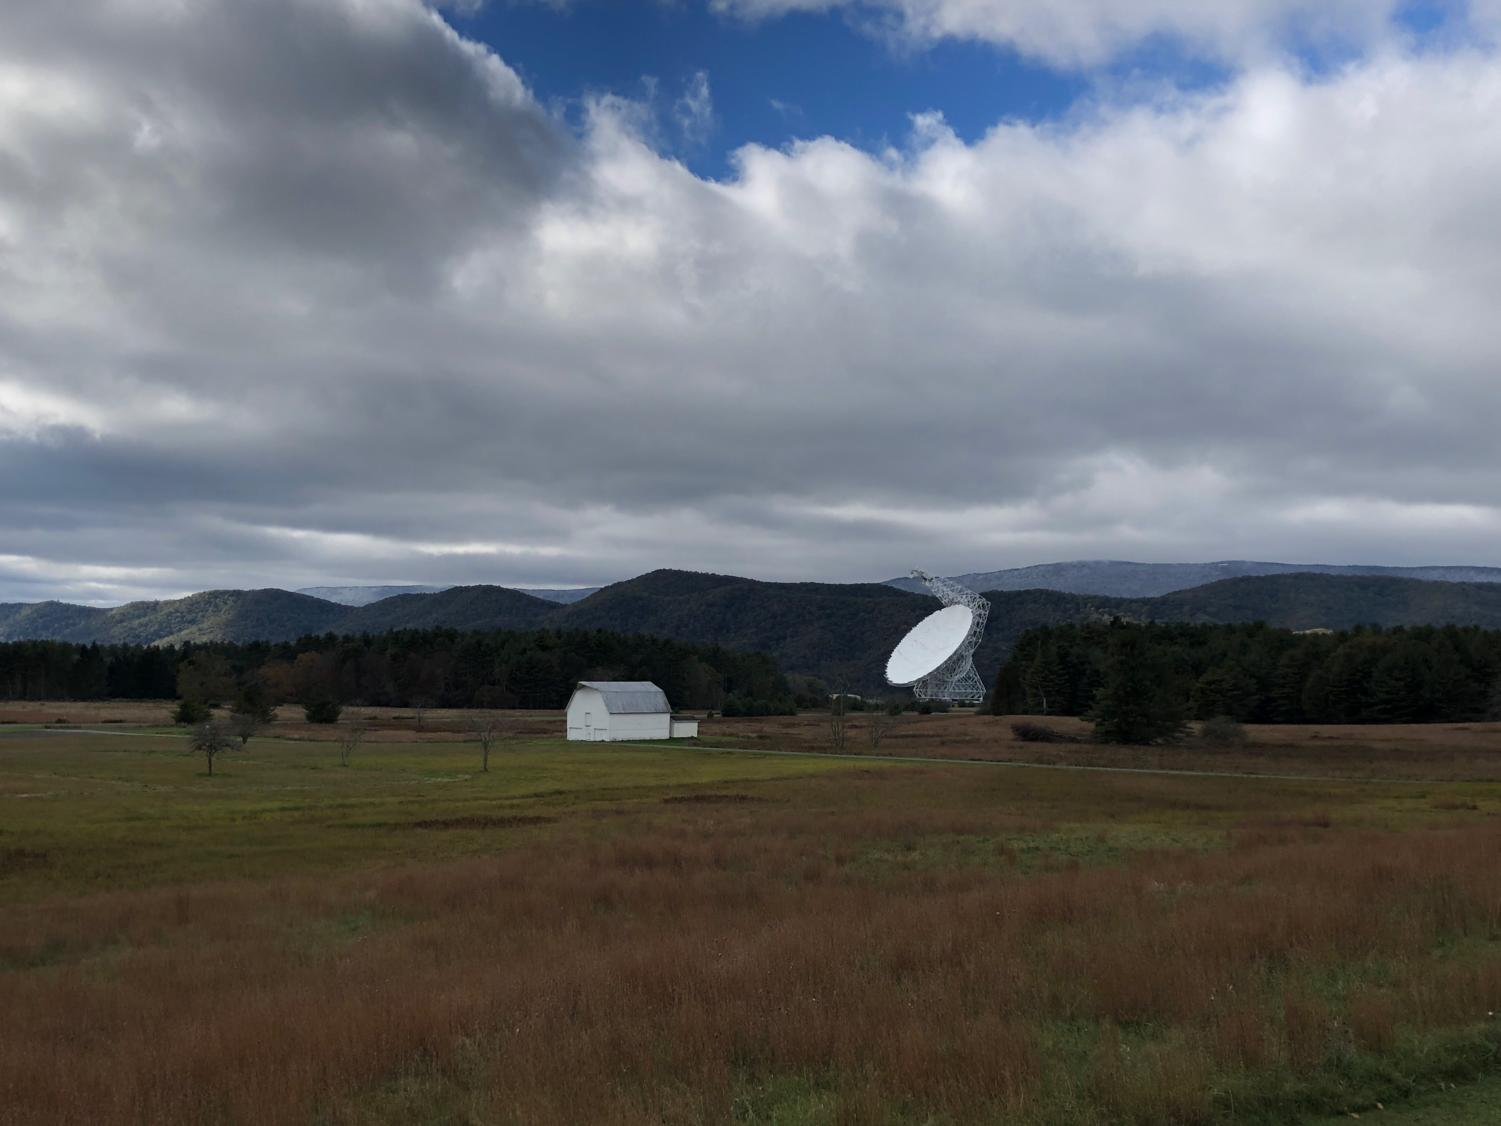 The+Robert+C.+Byrd+Green+Bank+Telescope+has+a+diameter+of+100+meters%2C+making+it+the+world%27s+largest+fully+steerable+radio+telescope.